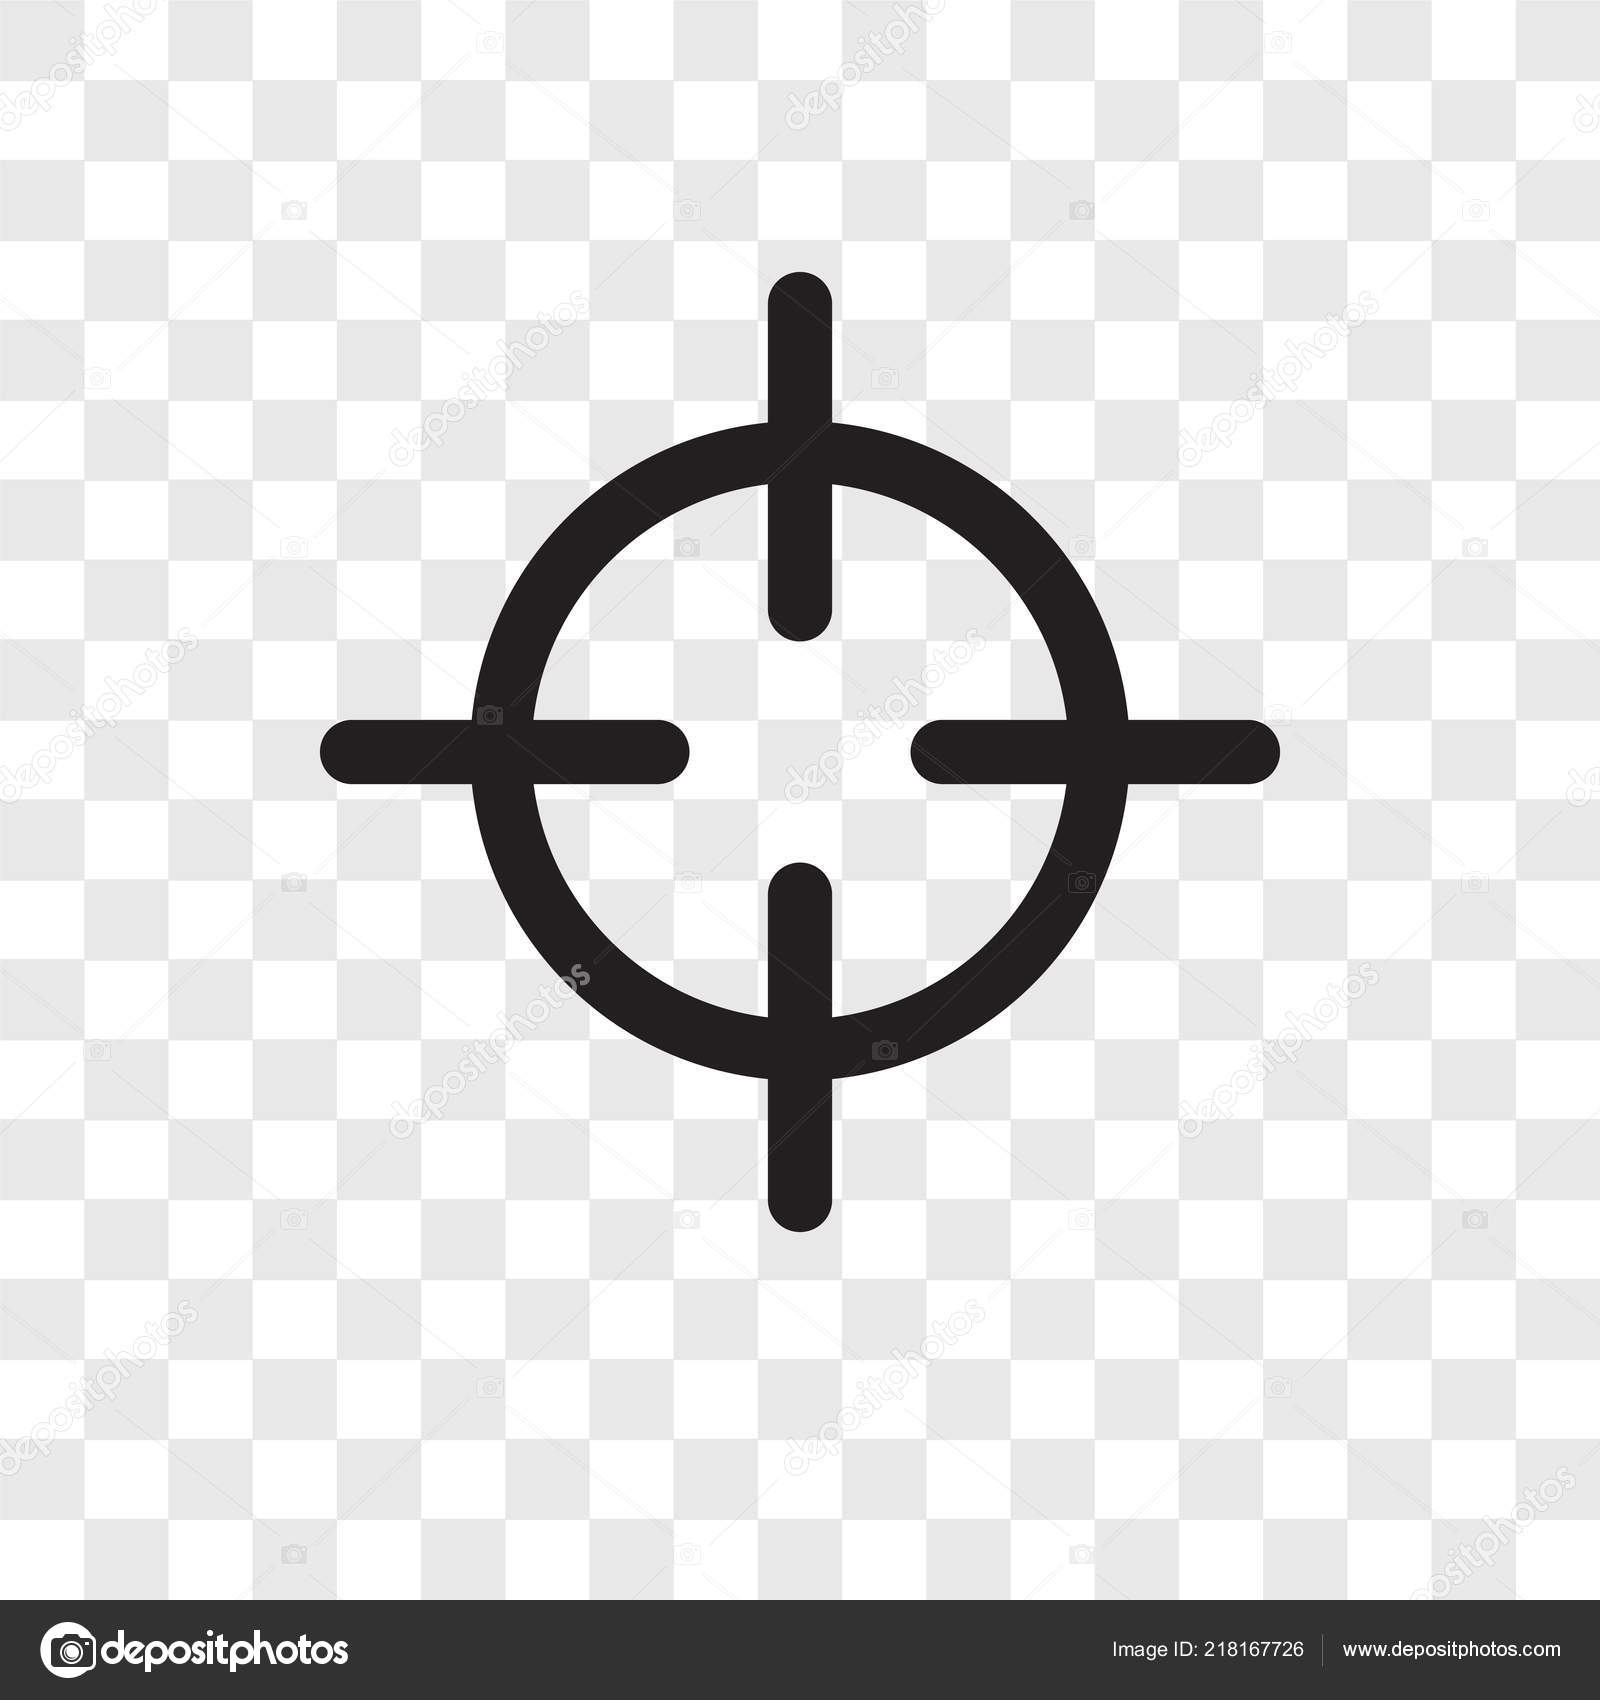 Target Vector Icon Isolated Transparent Background Target Transparency Logo Concept Stock Vector C Topvectorstock 218167726